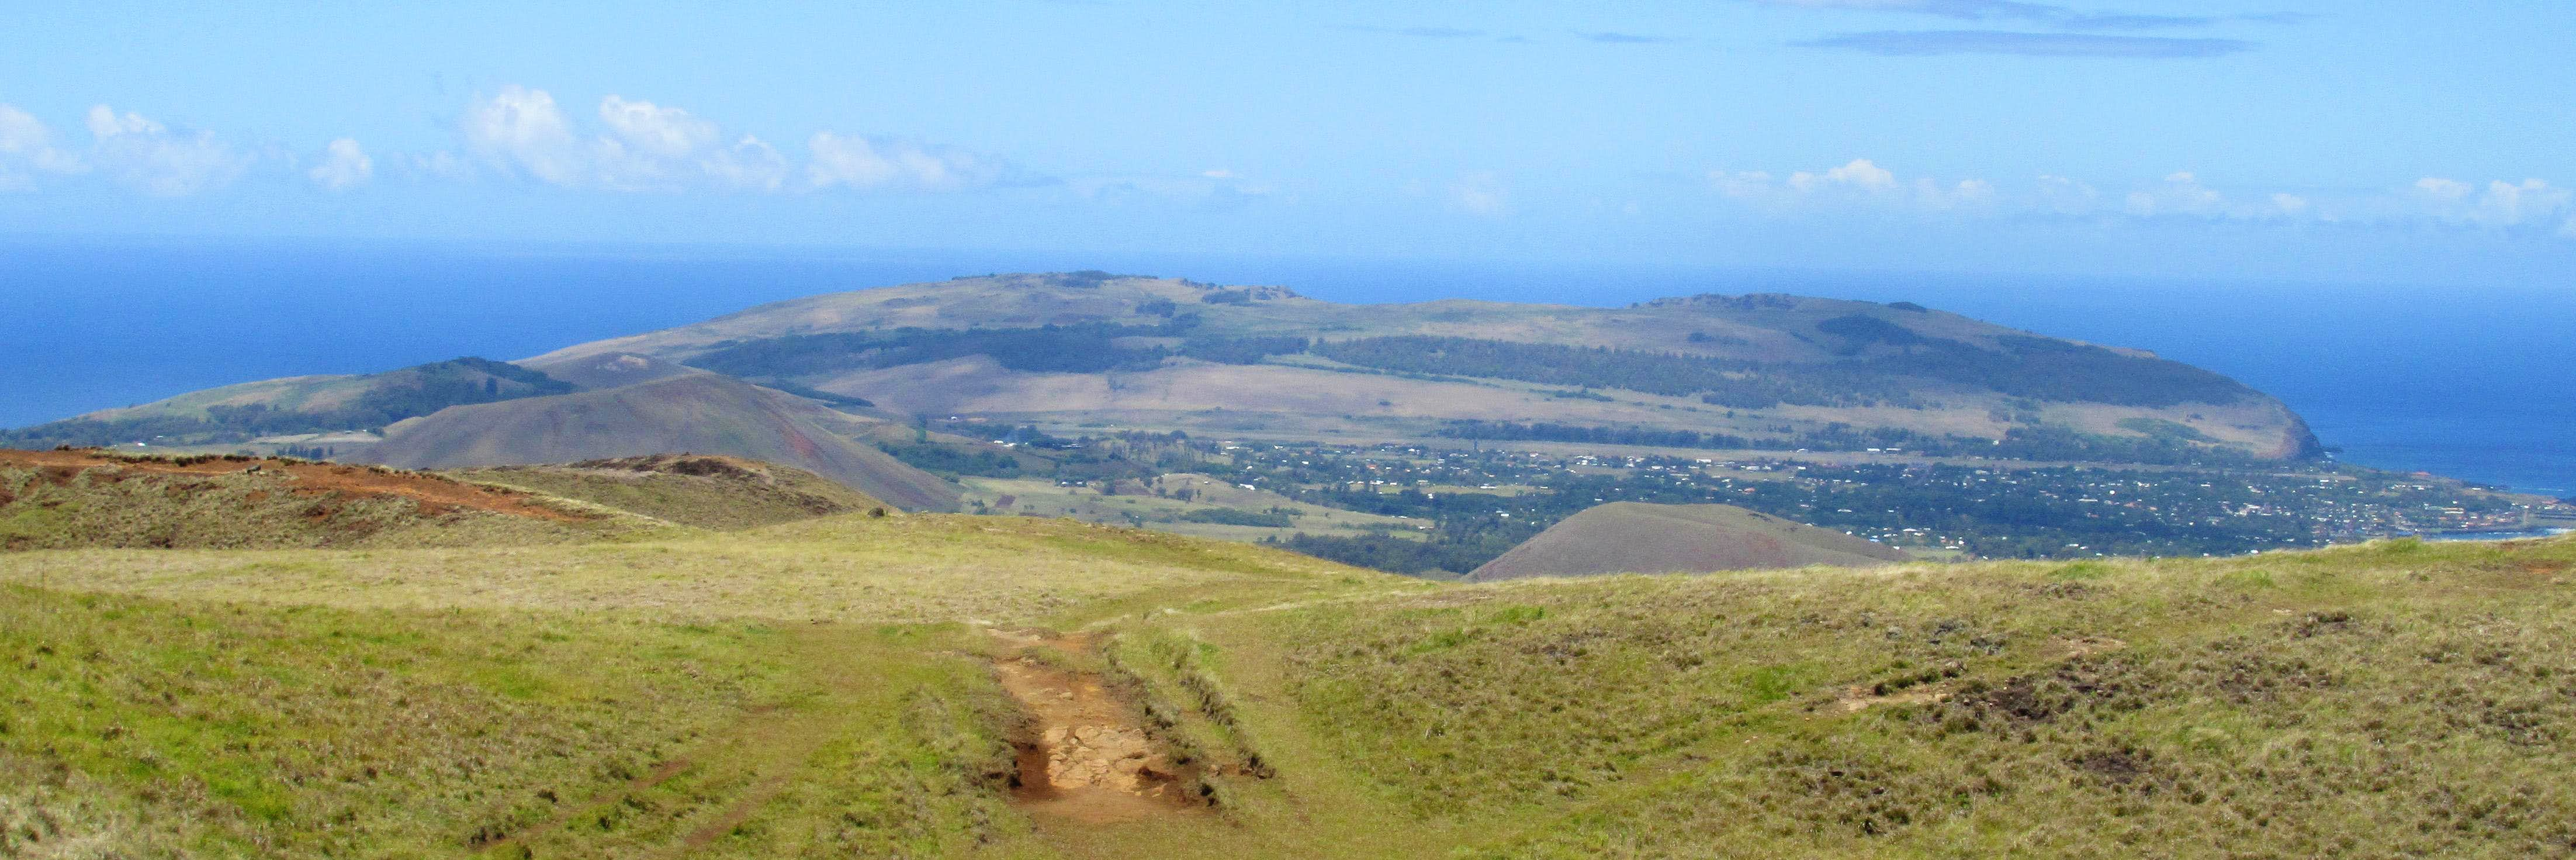 Rano Kau Summit Route